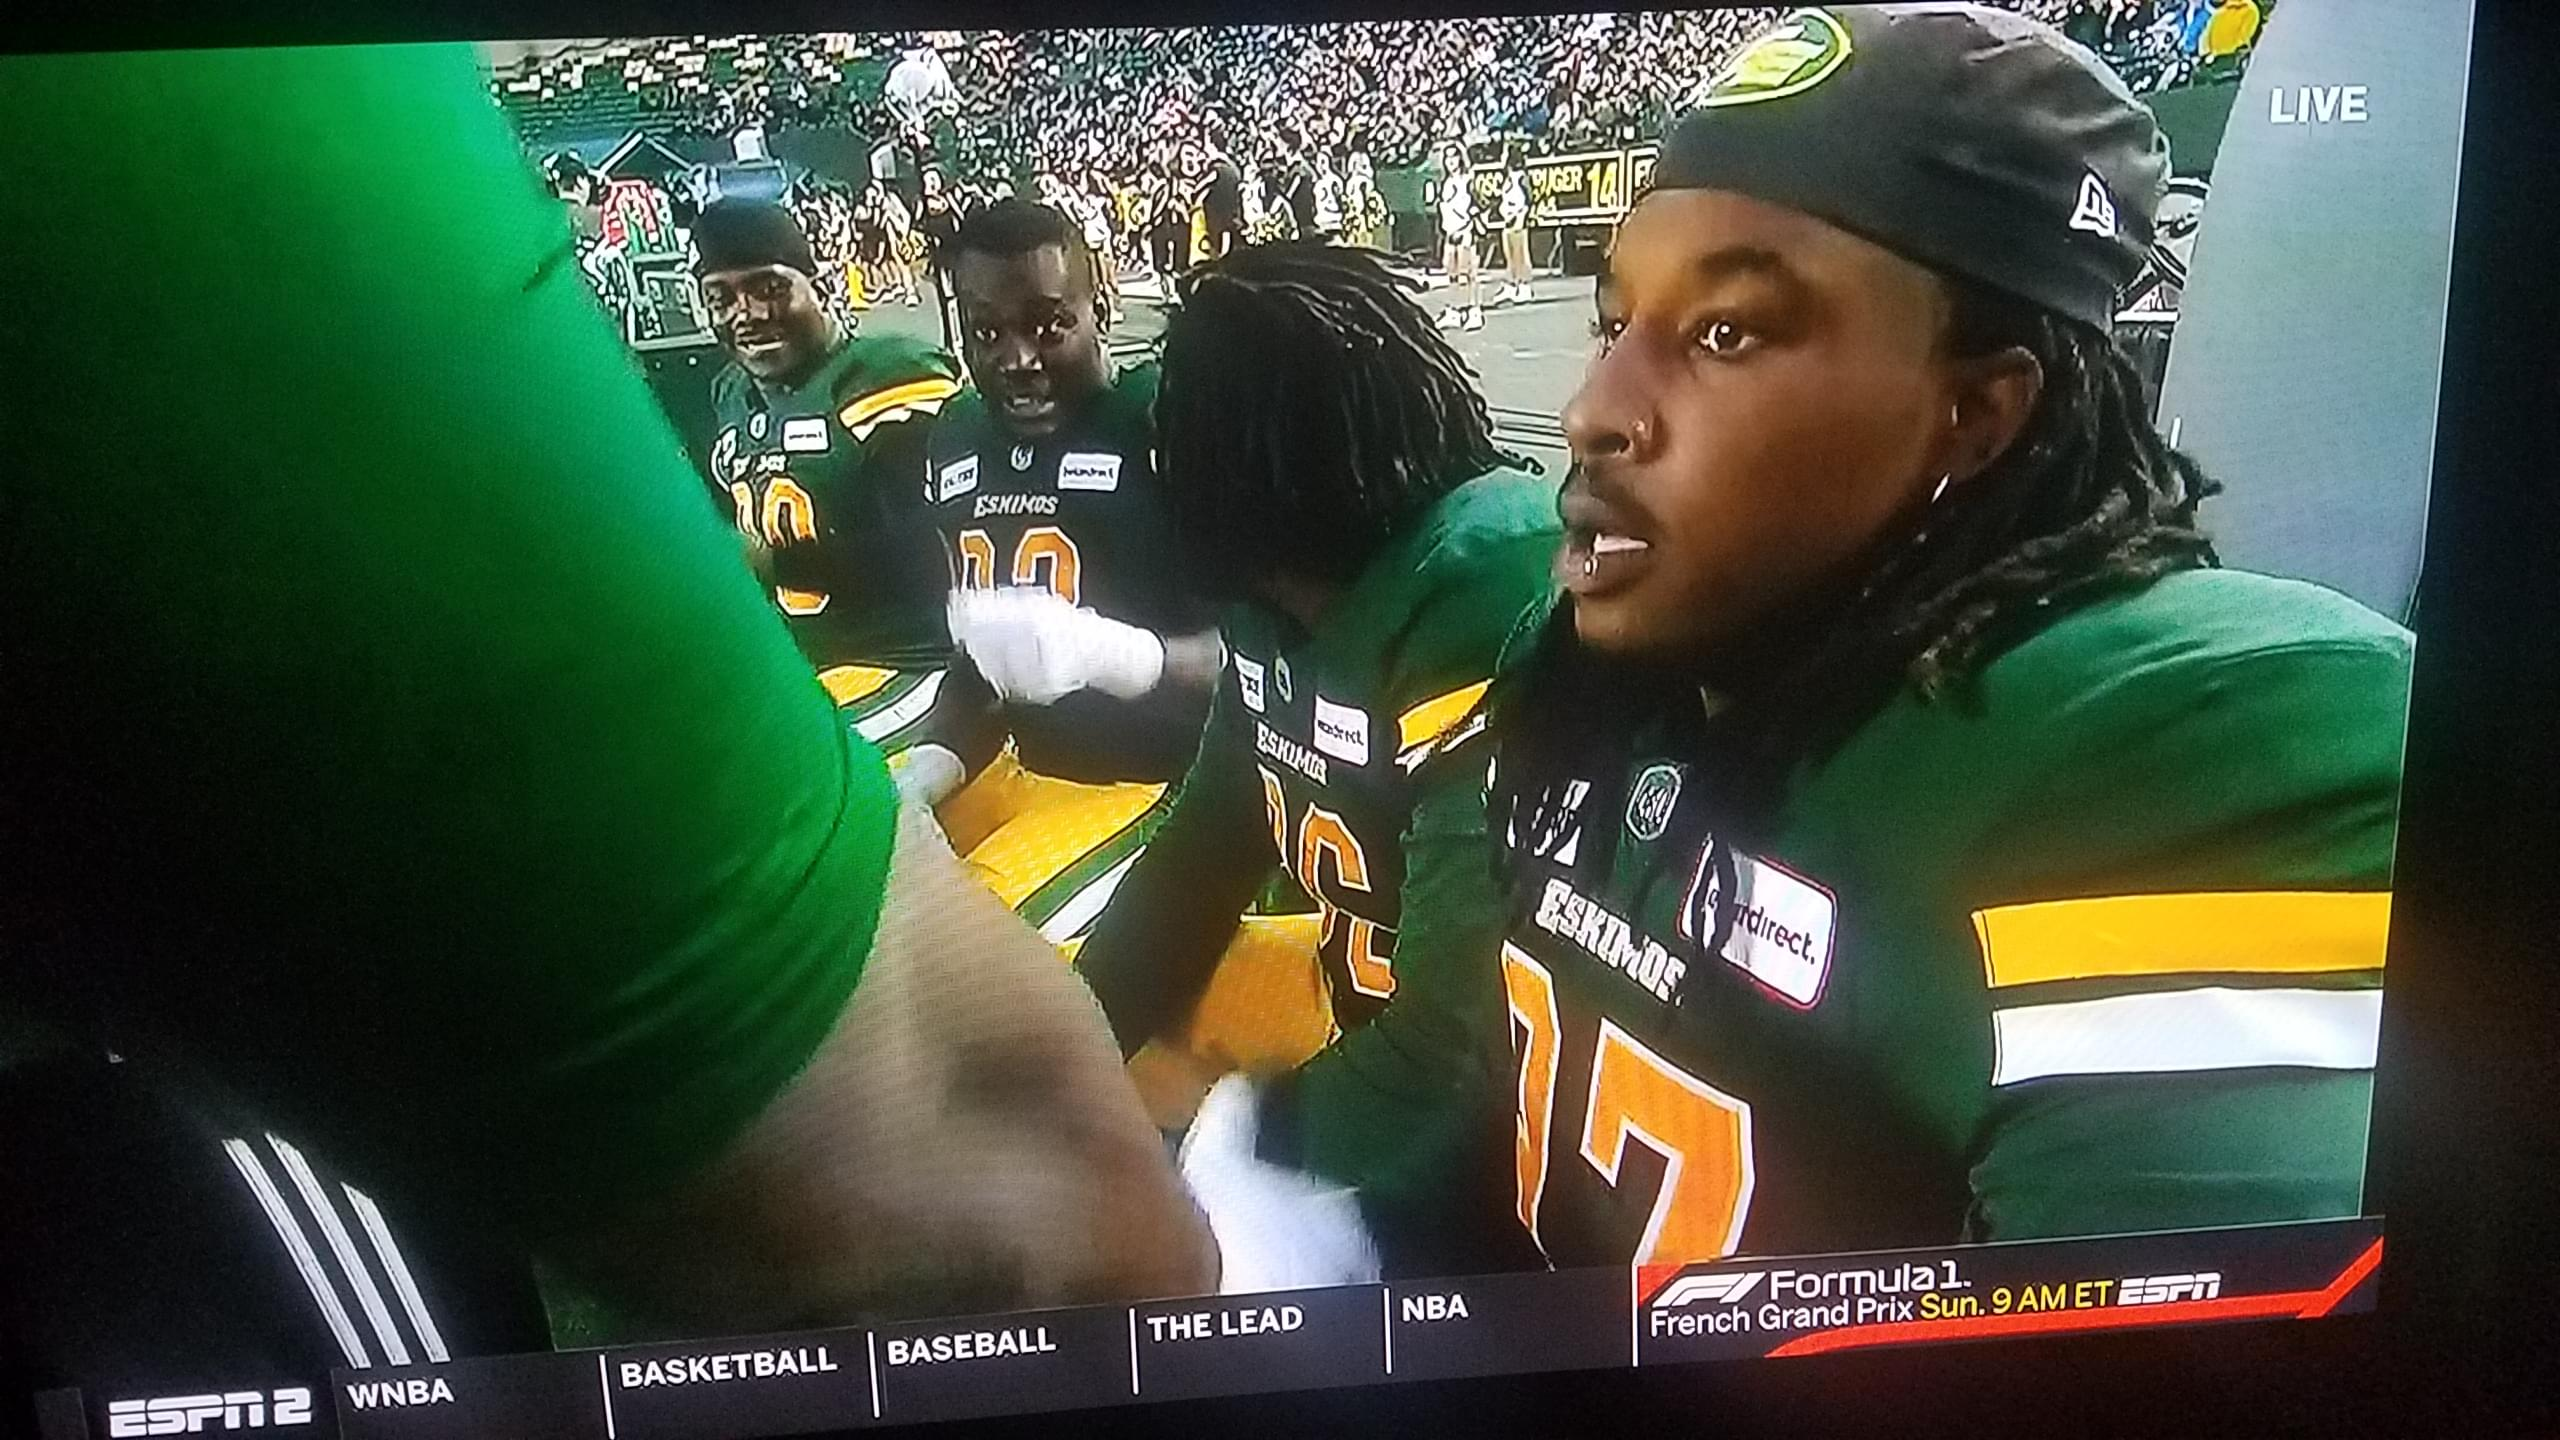 Two recent VFLs playing in the CFL in 2019